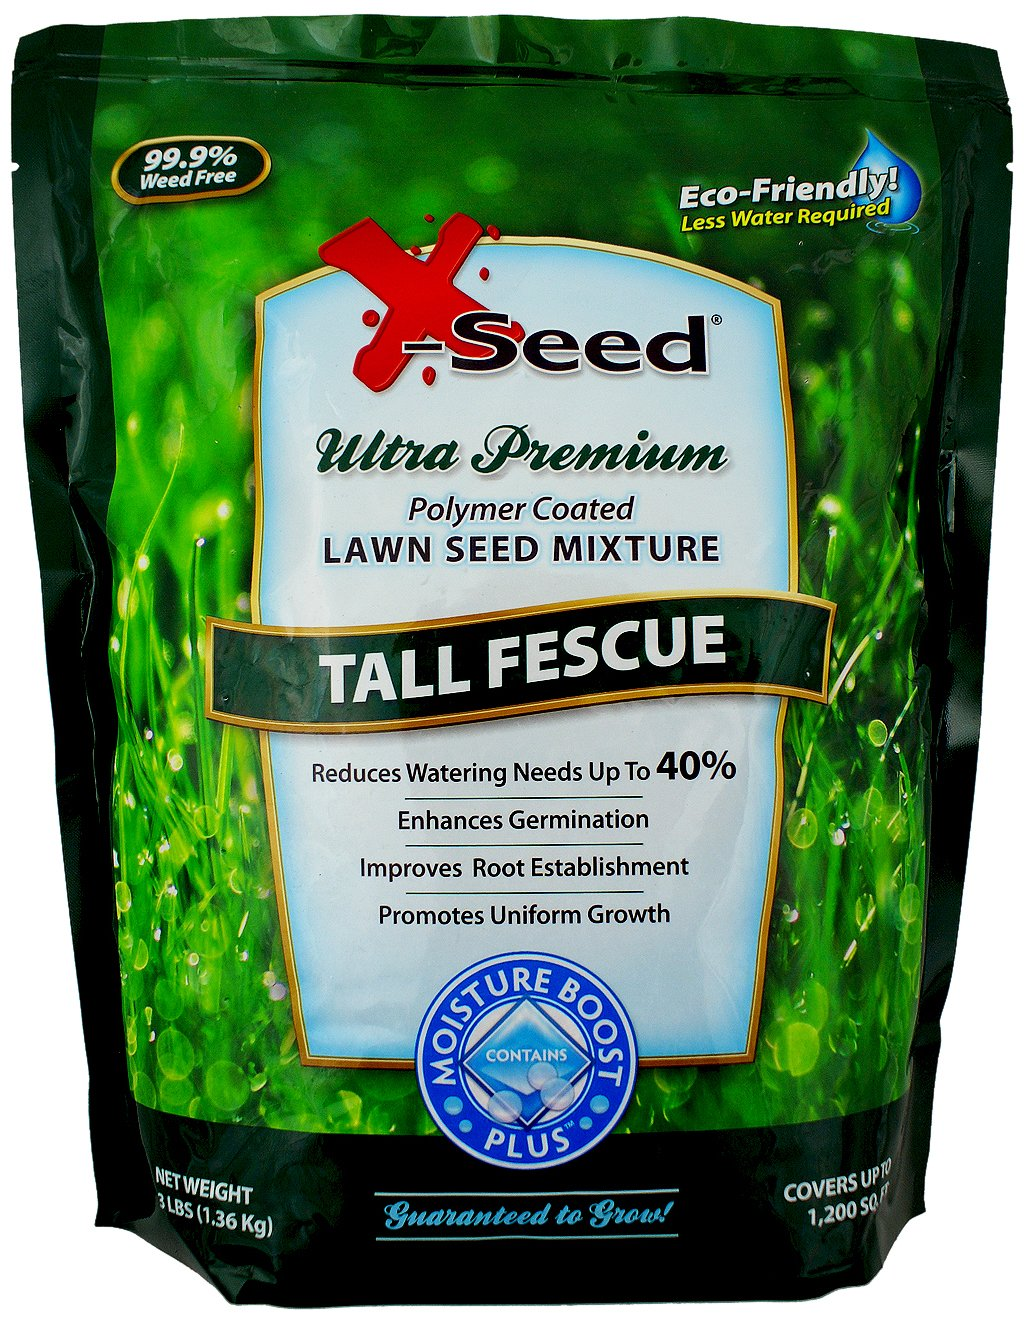 X-Seed Moisture Boost Plus Tall Fescue Lawn Seed Mixture, 3-Pound